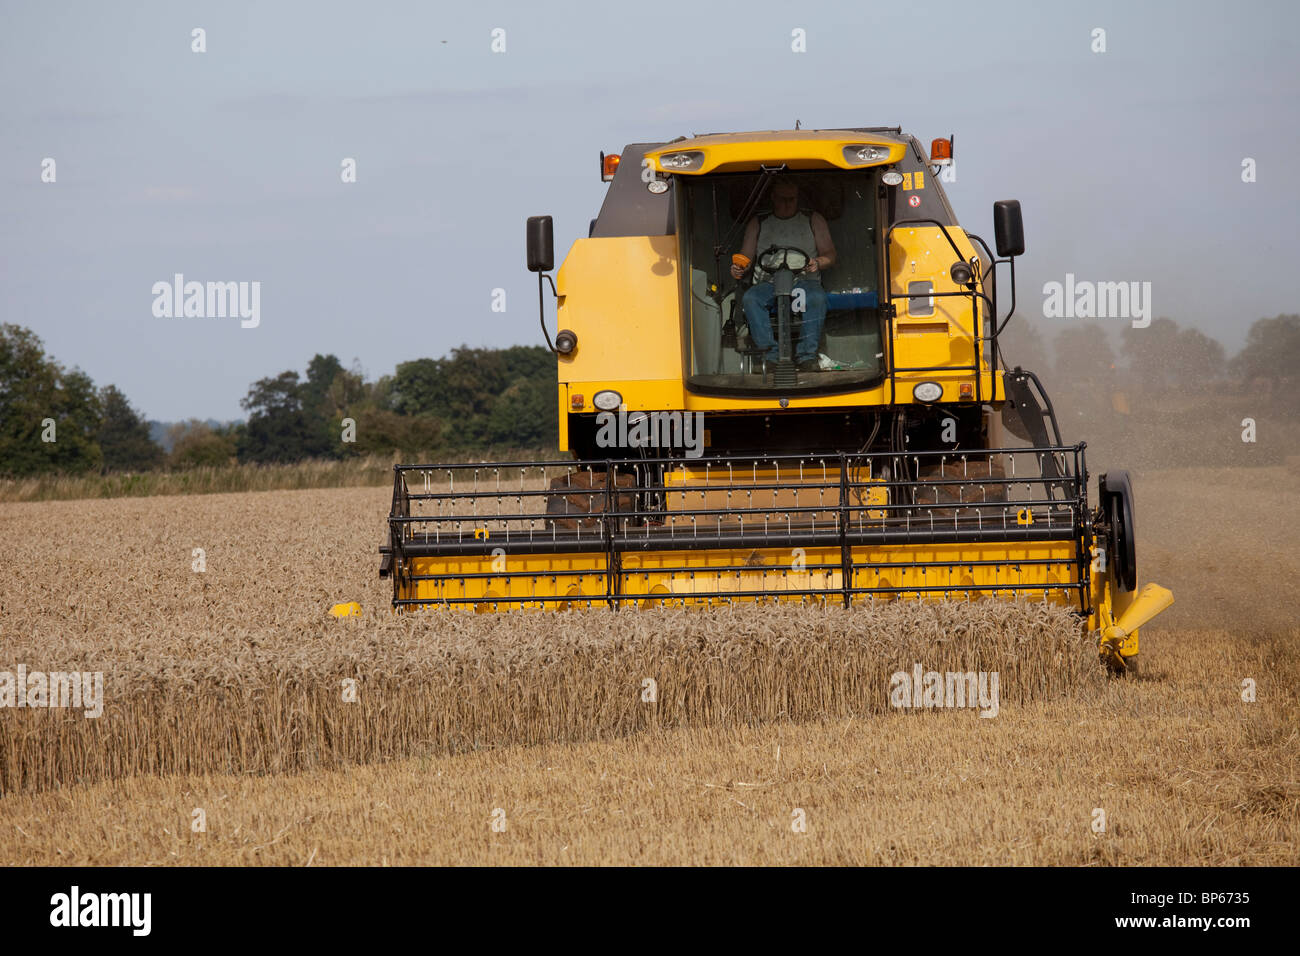 New Holland combine harvester harvesting wheat field Cotswolds UK - Stock Image